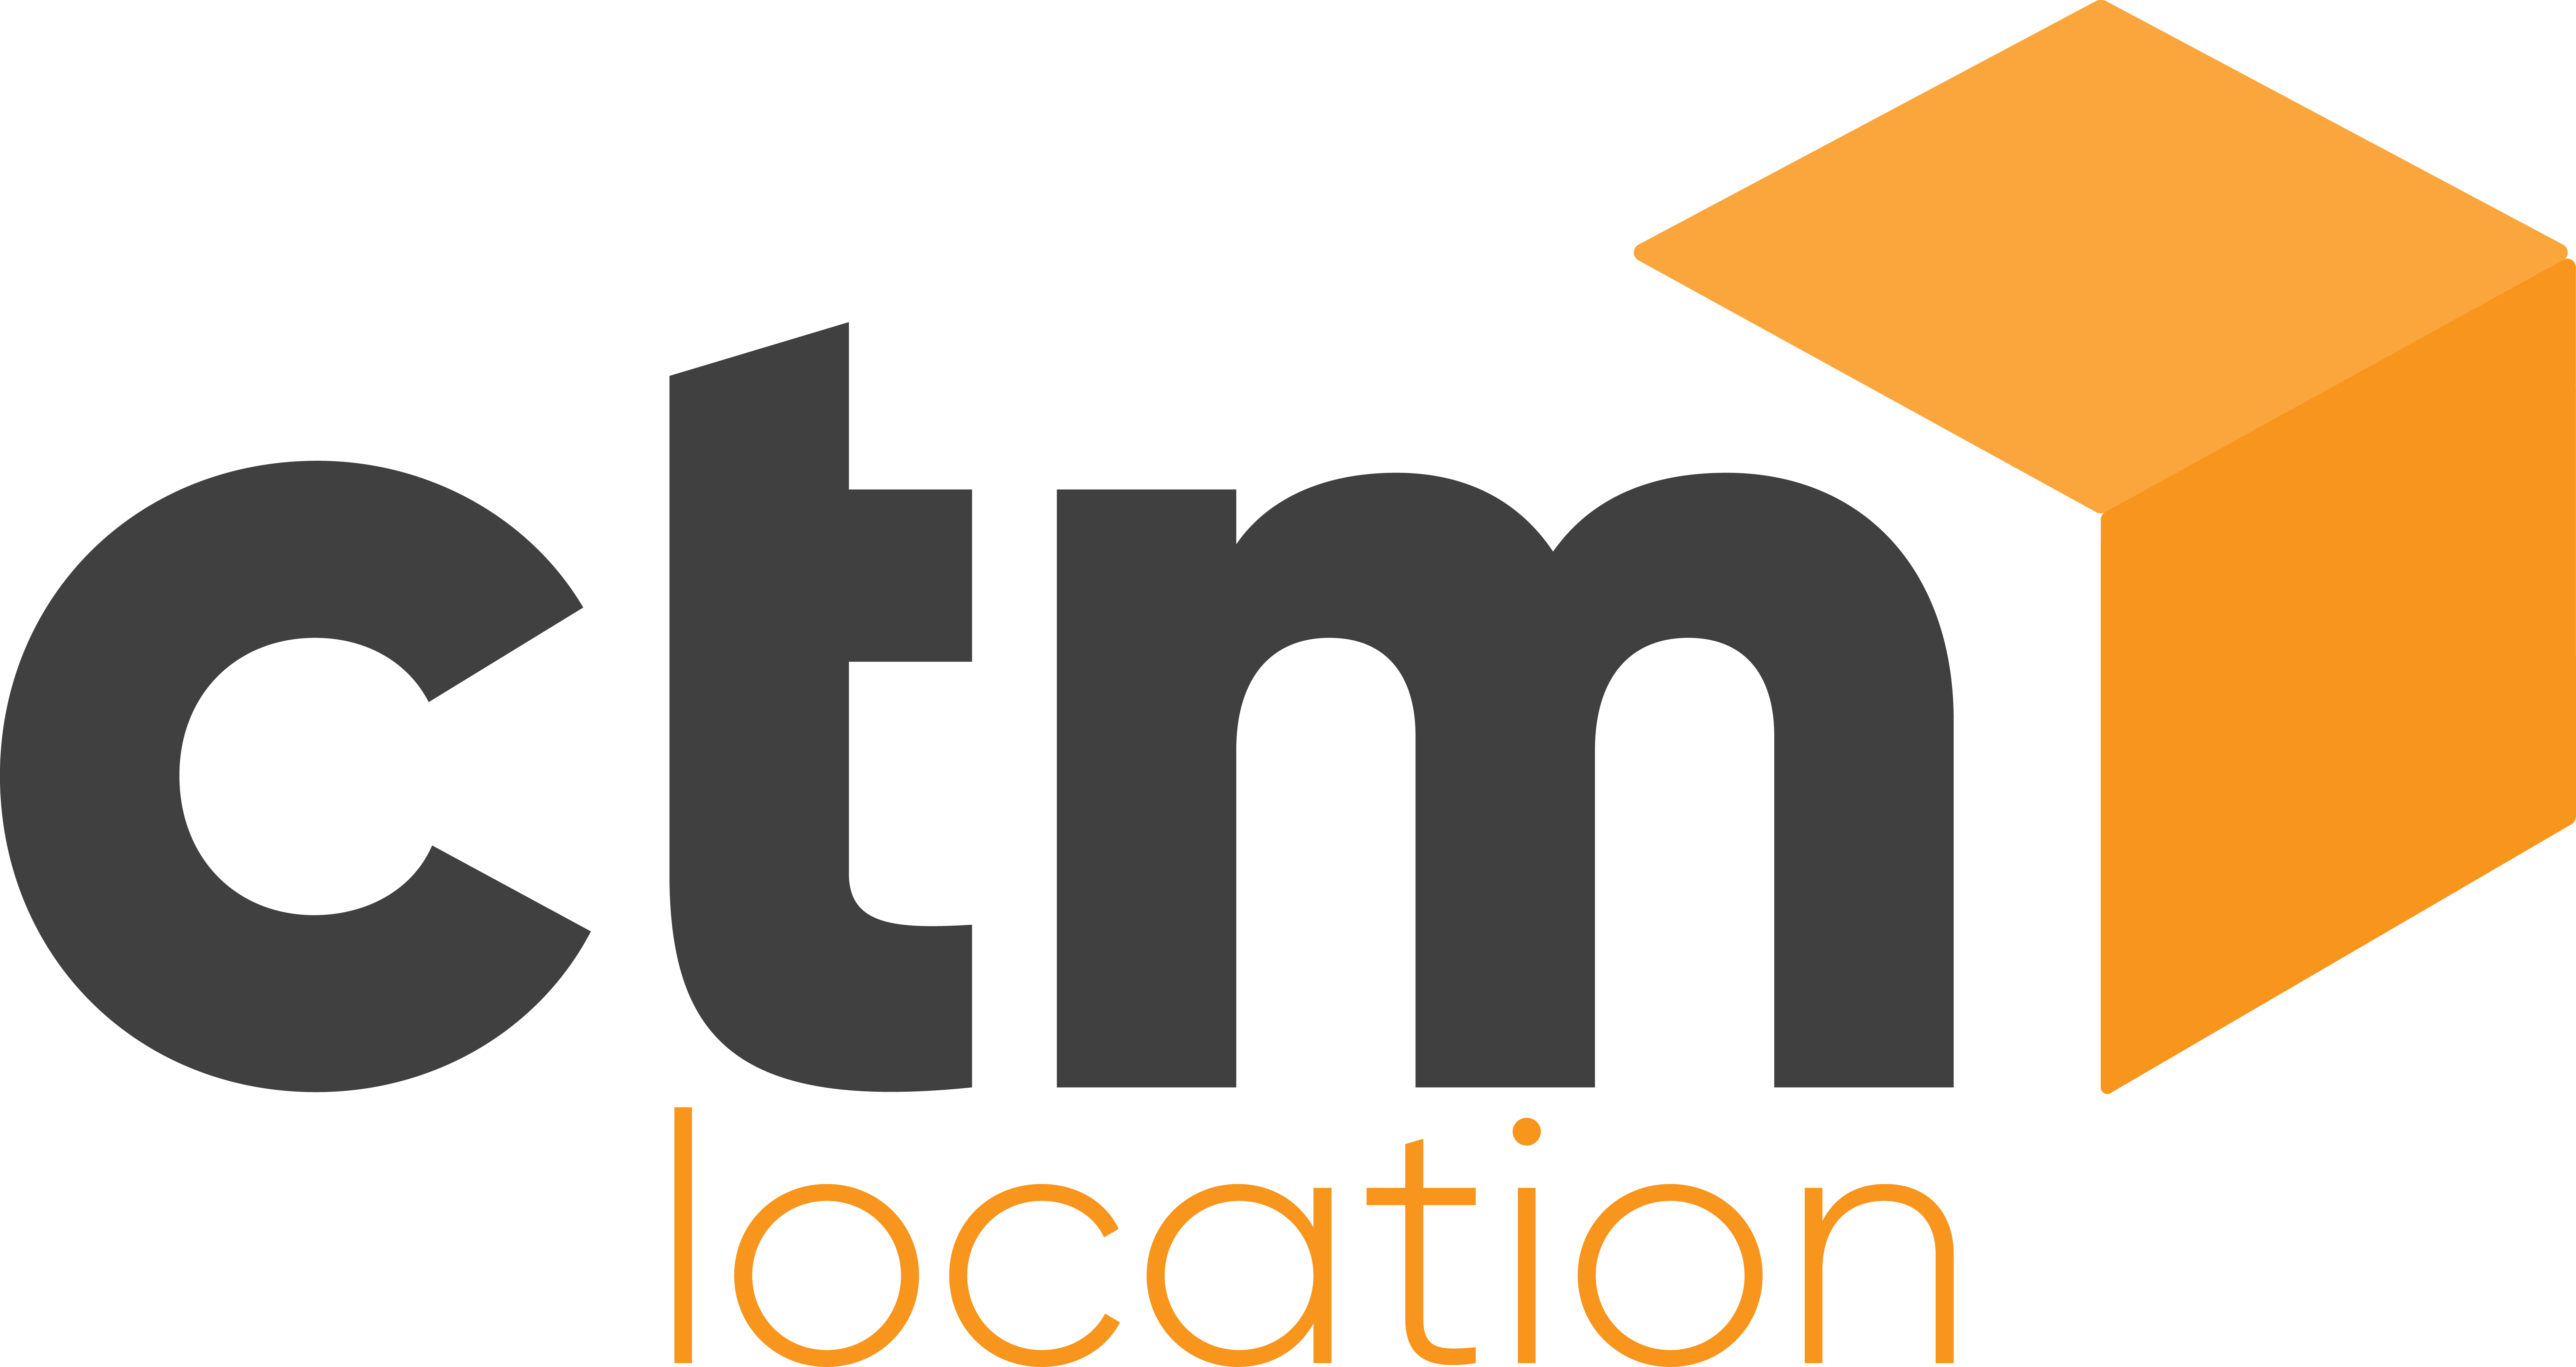 LOGO_CTM_LOCATION